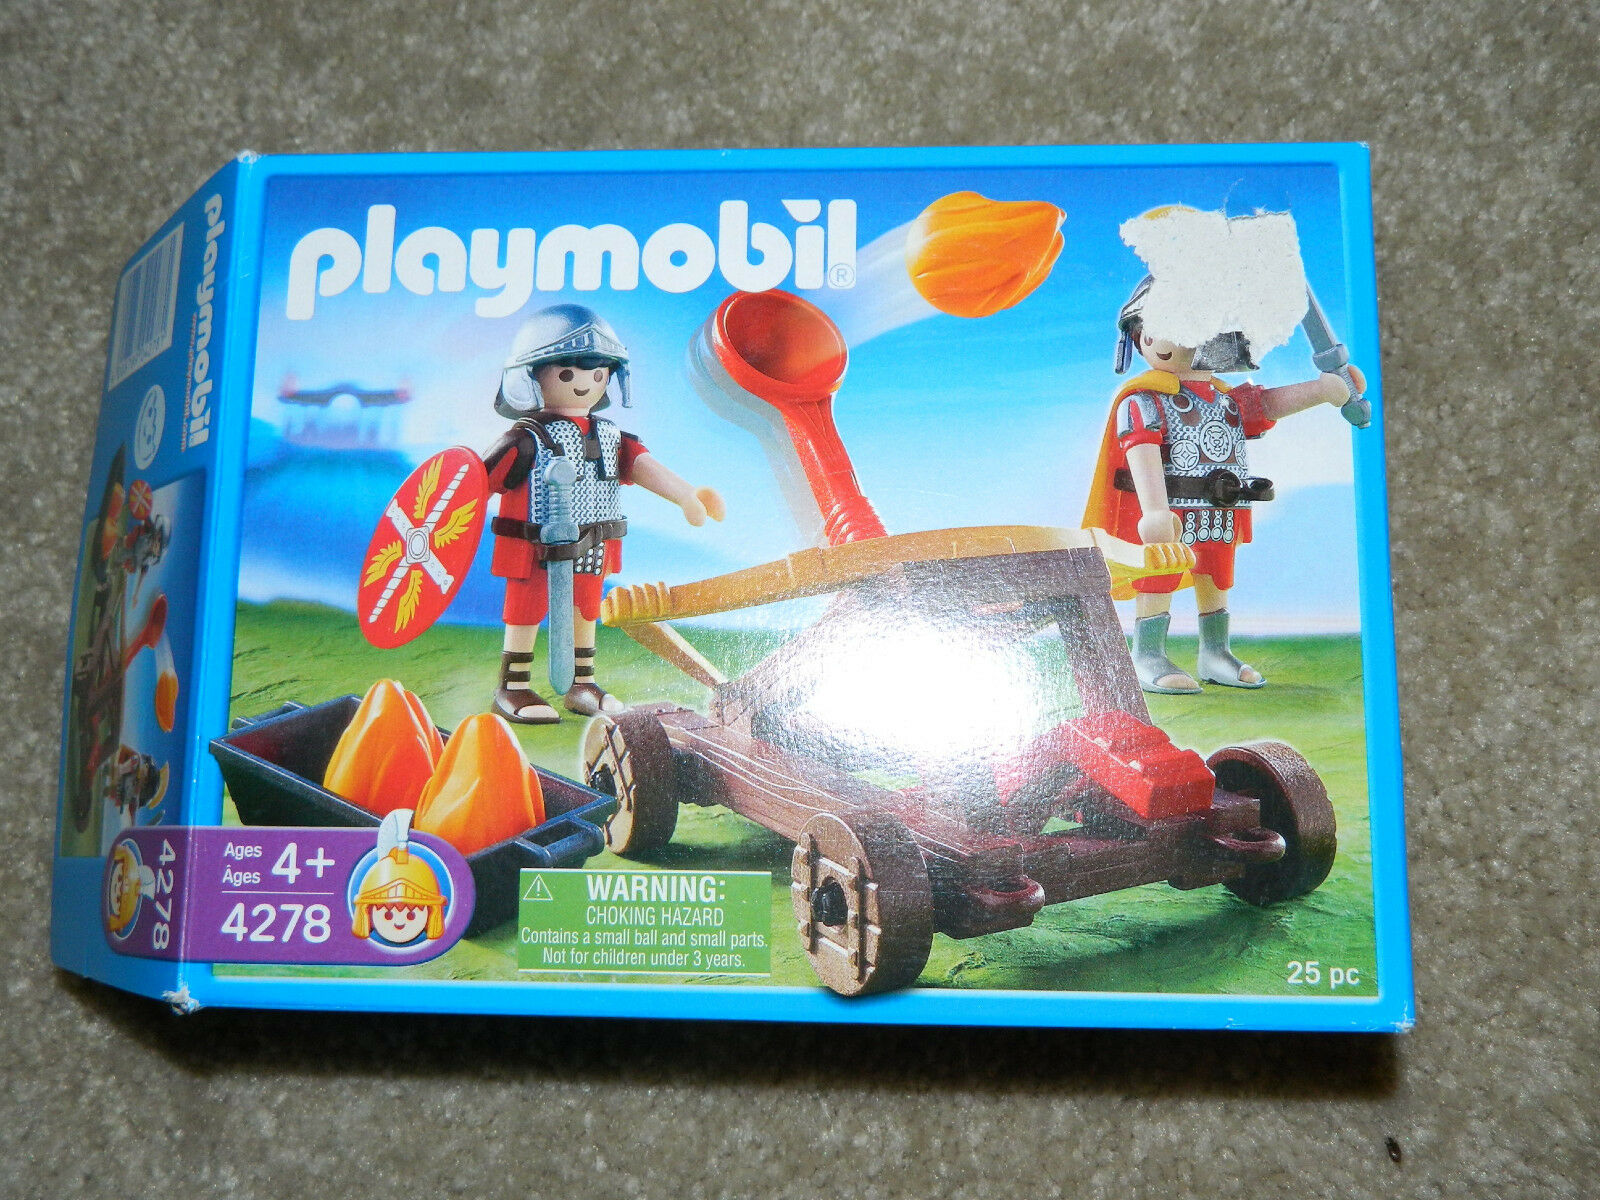 PLAYMOBIL 4278 (Retired) (Retired) (Retired)  Knights W Catapult Set  Complete & MINT w  Box 479076